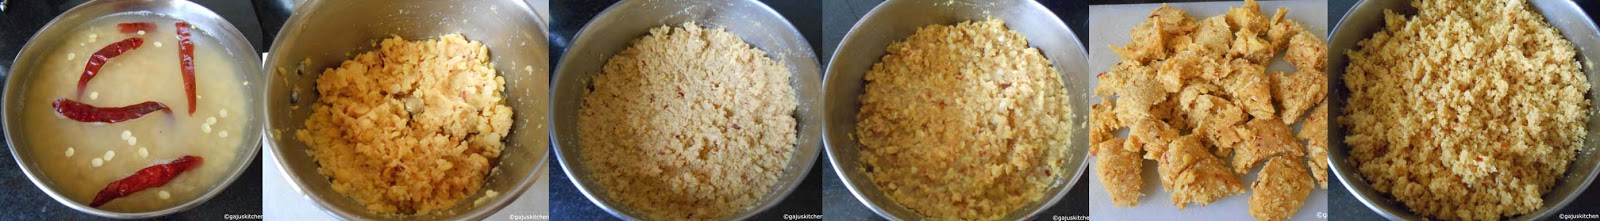 Dhal preparation for usili